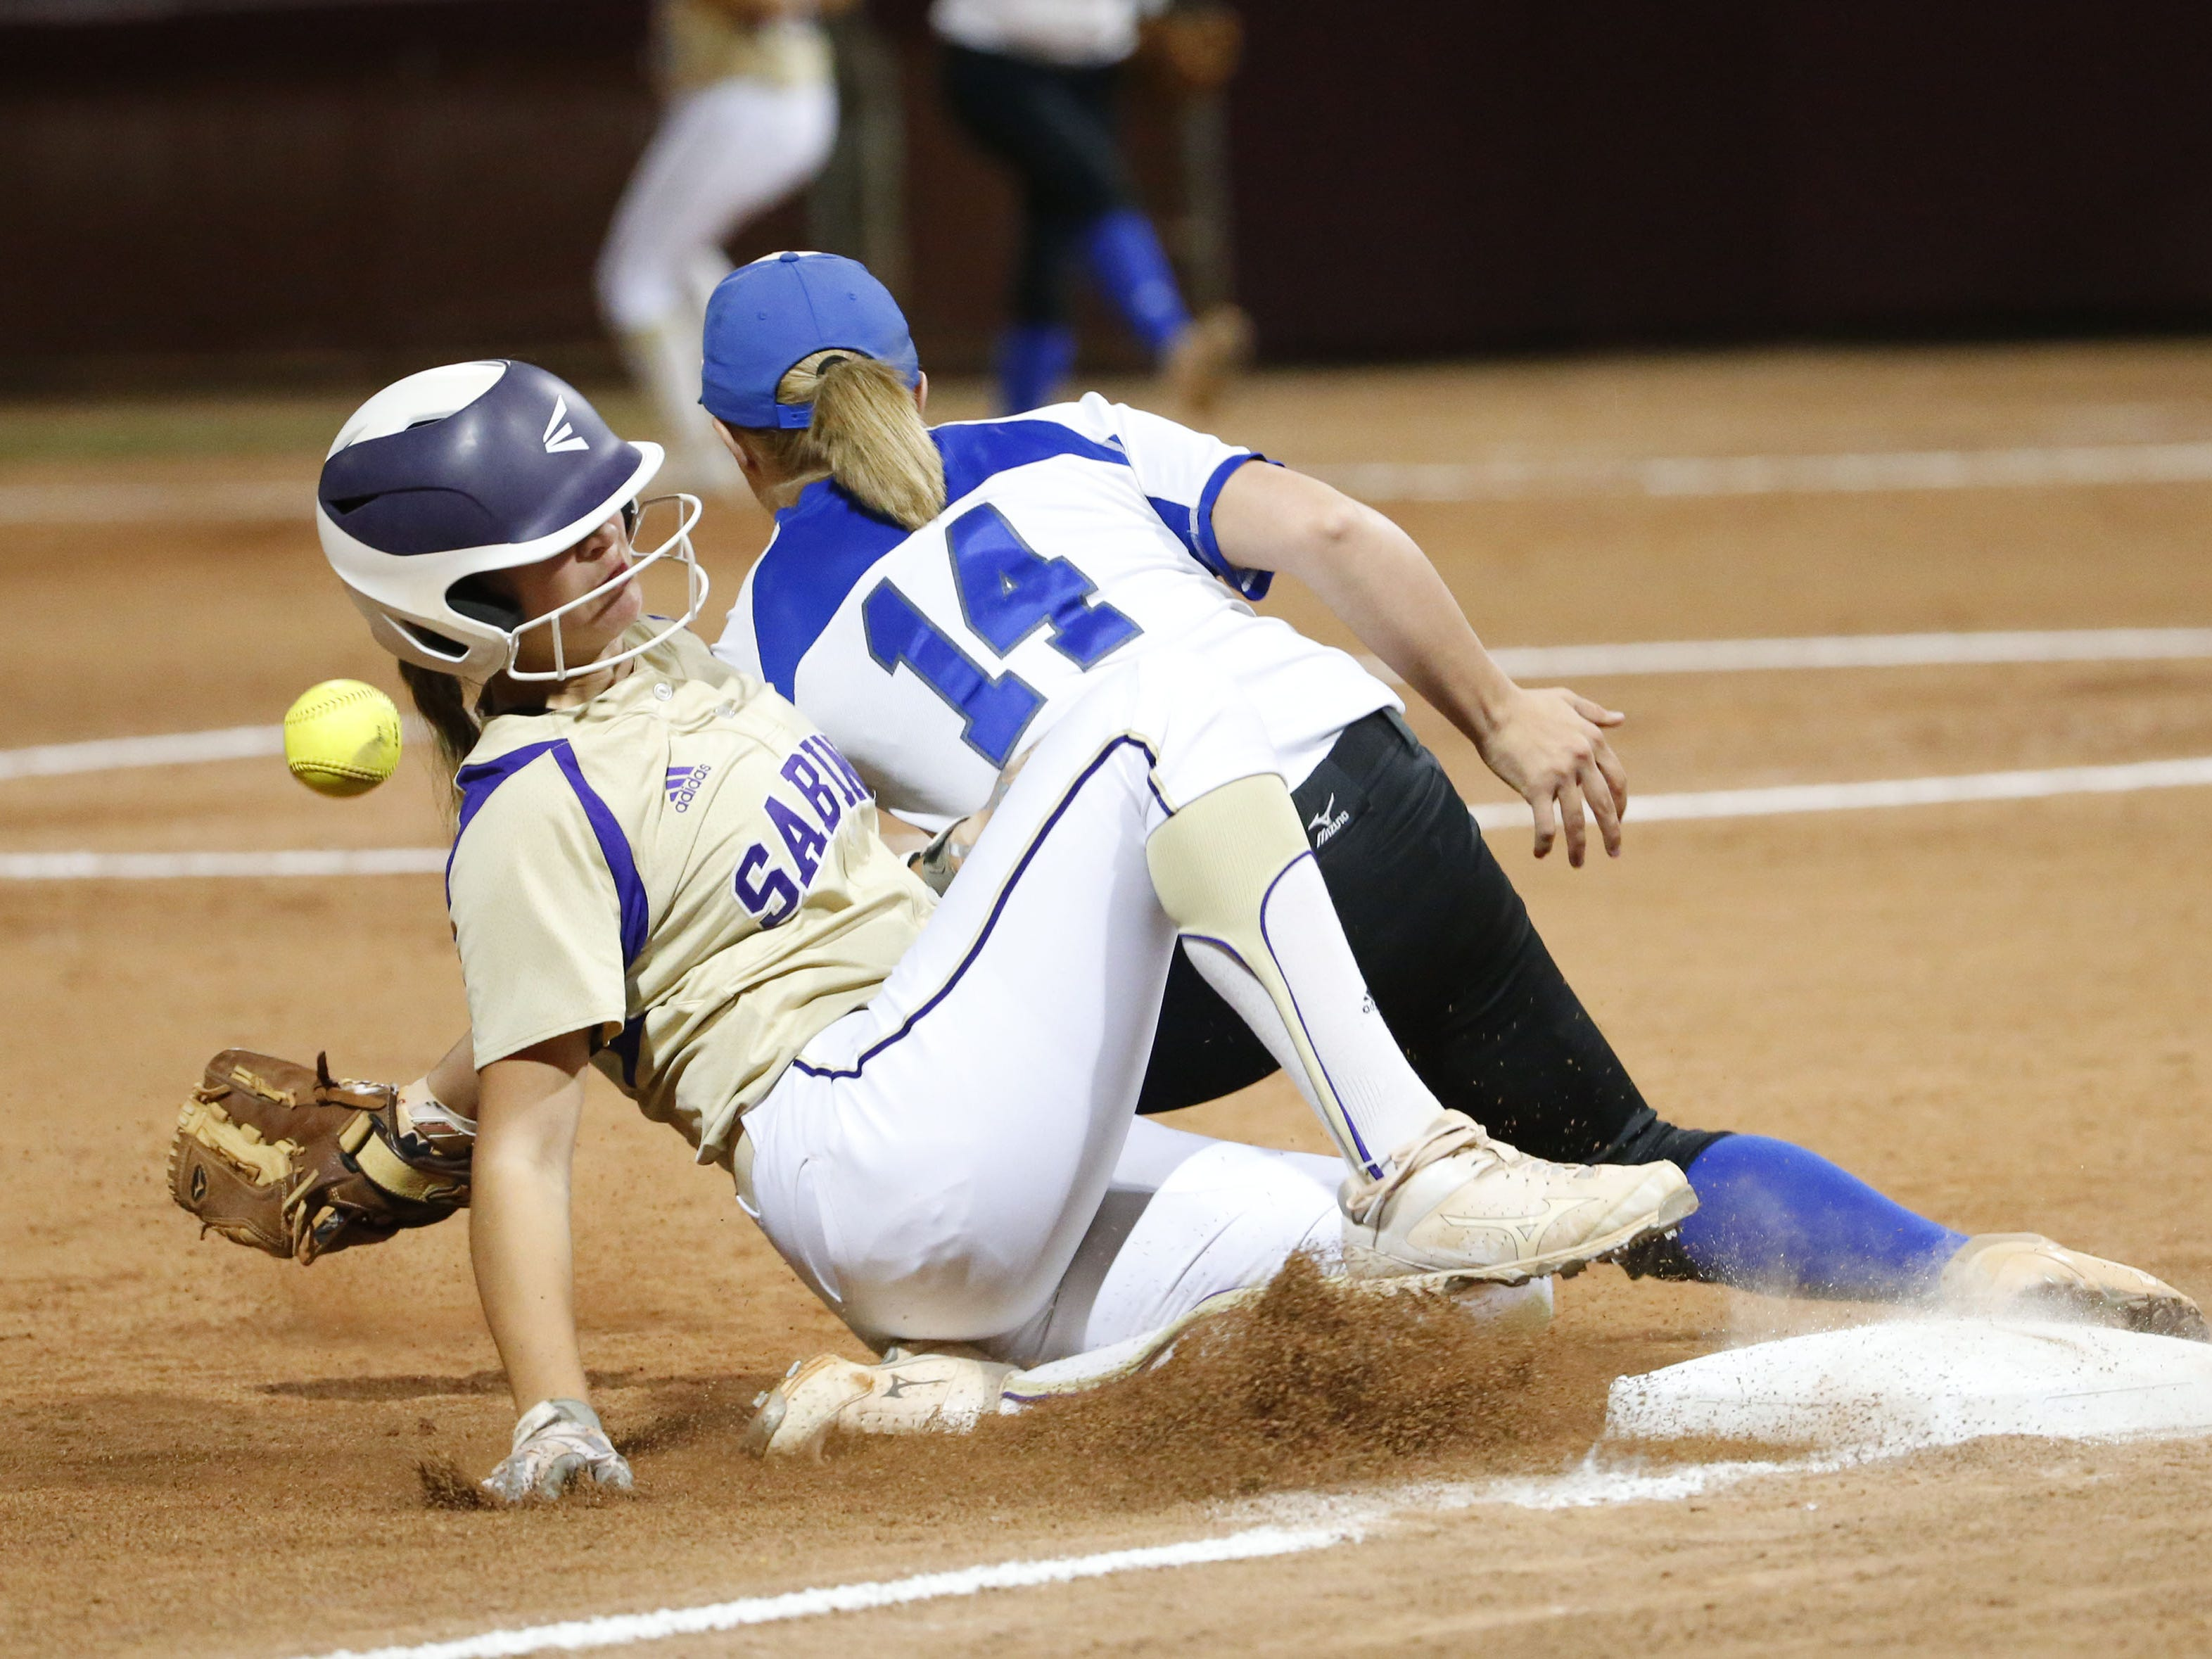 Sabino's Madison Filmore-Moreno (8) slides safely into third base ahead of the tag by Snowflake third baseman Hallie McCray (14) during the 3A softball state championship game in Tempe May 6, 2019.